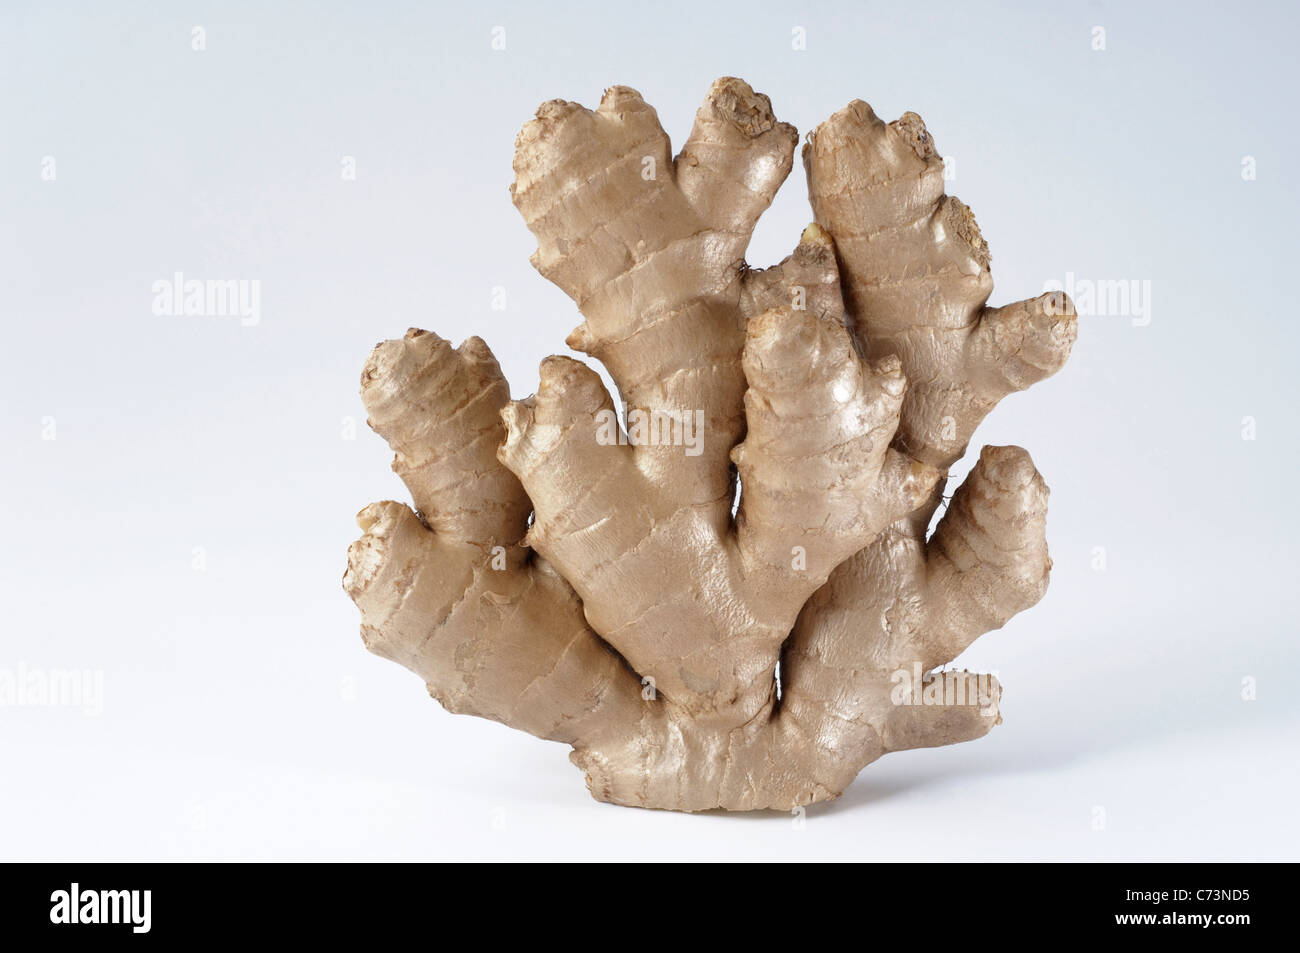 Ginger (Zingiber officinalis), fresh rhizome. Studio picture against a white background. - Stock Image